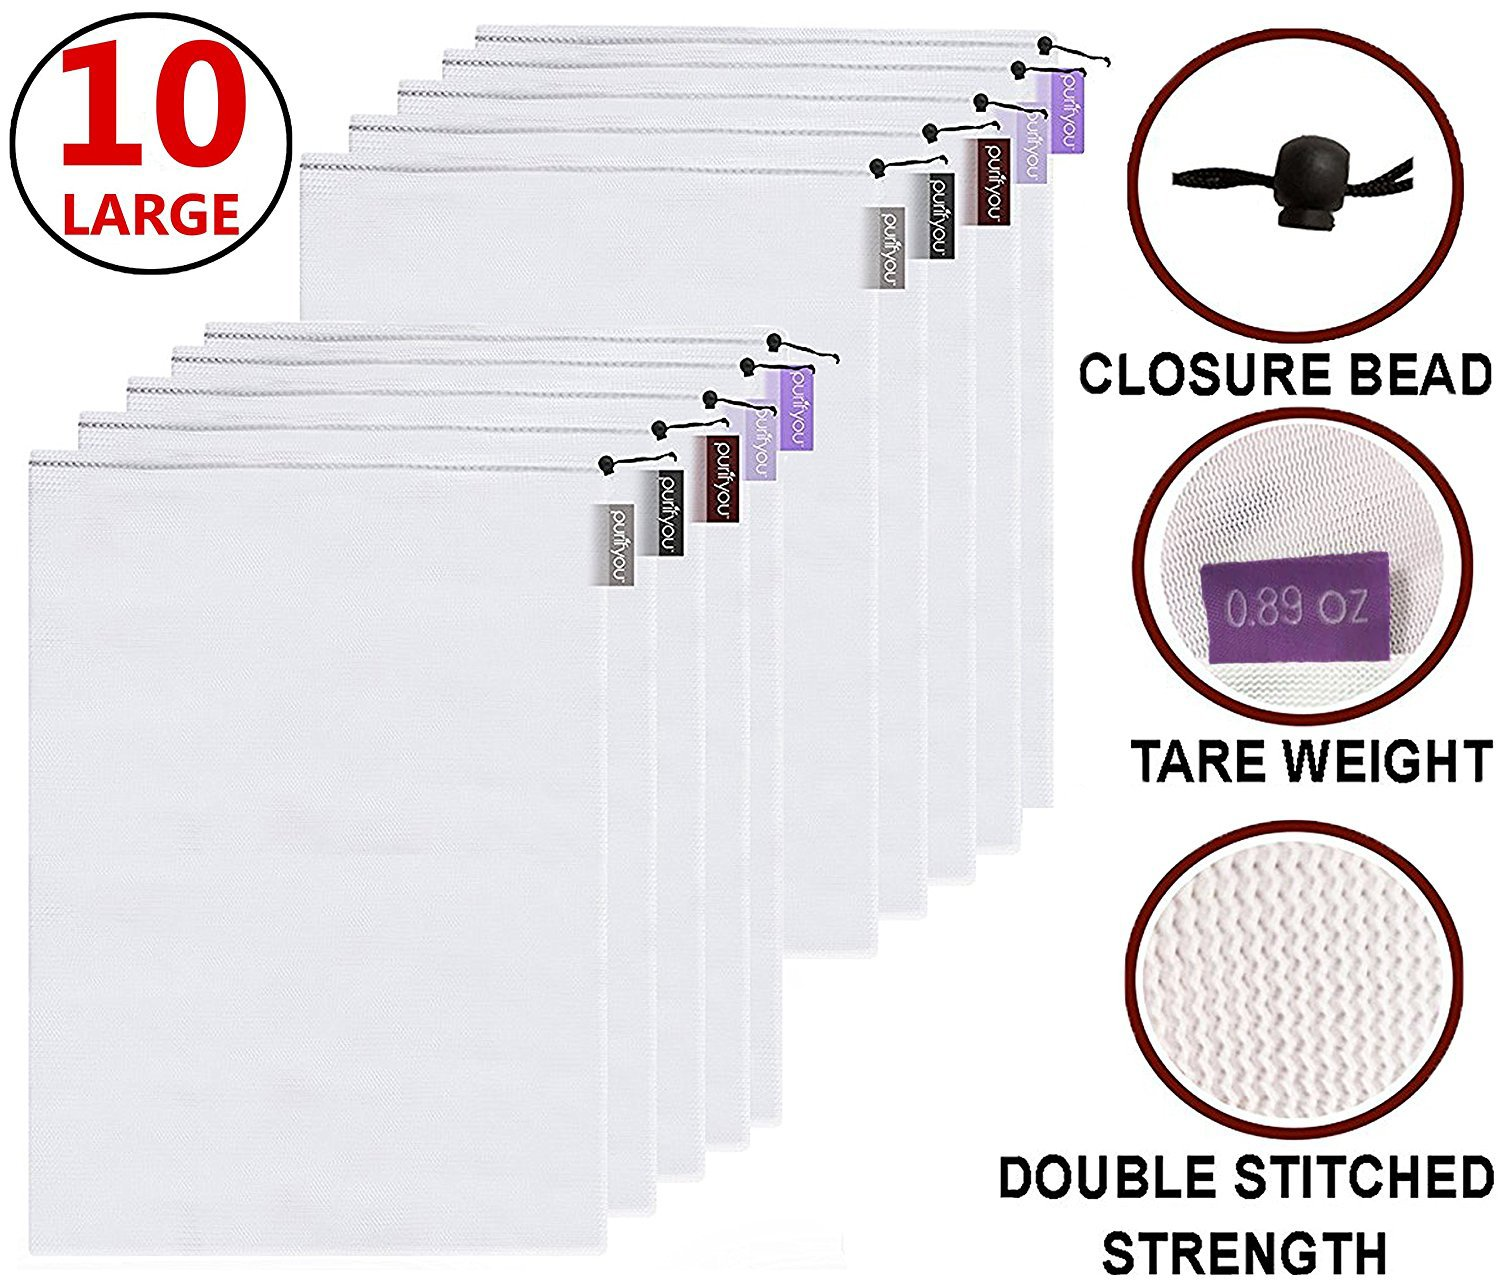 purifyou Premium Reusable Mesh/Produce Bags, Set of 10 Extra Large, Superior Double-Stitched Strength, with Tare Weight on Tags | Lightweight, See-Through by purifyou